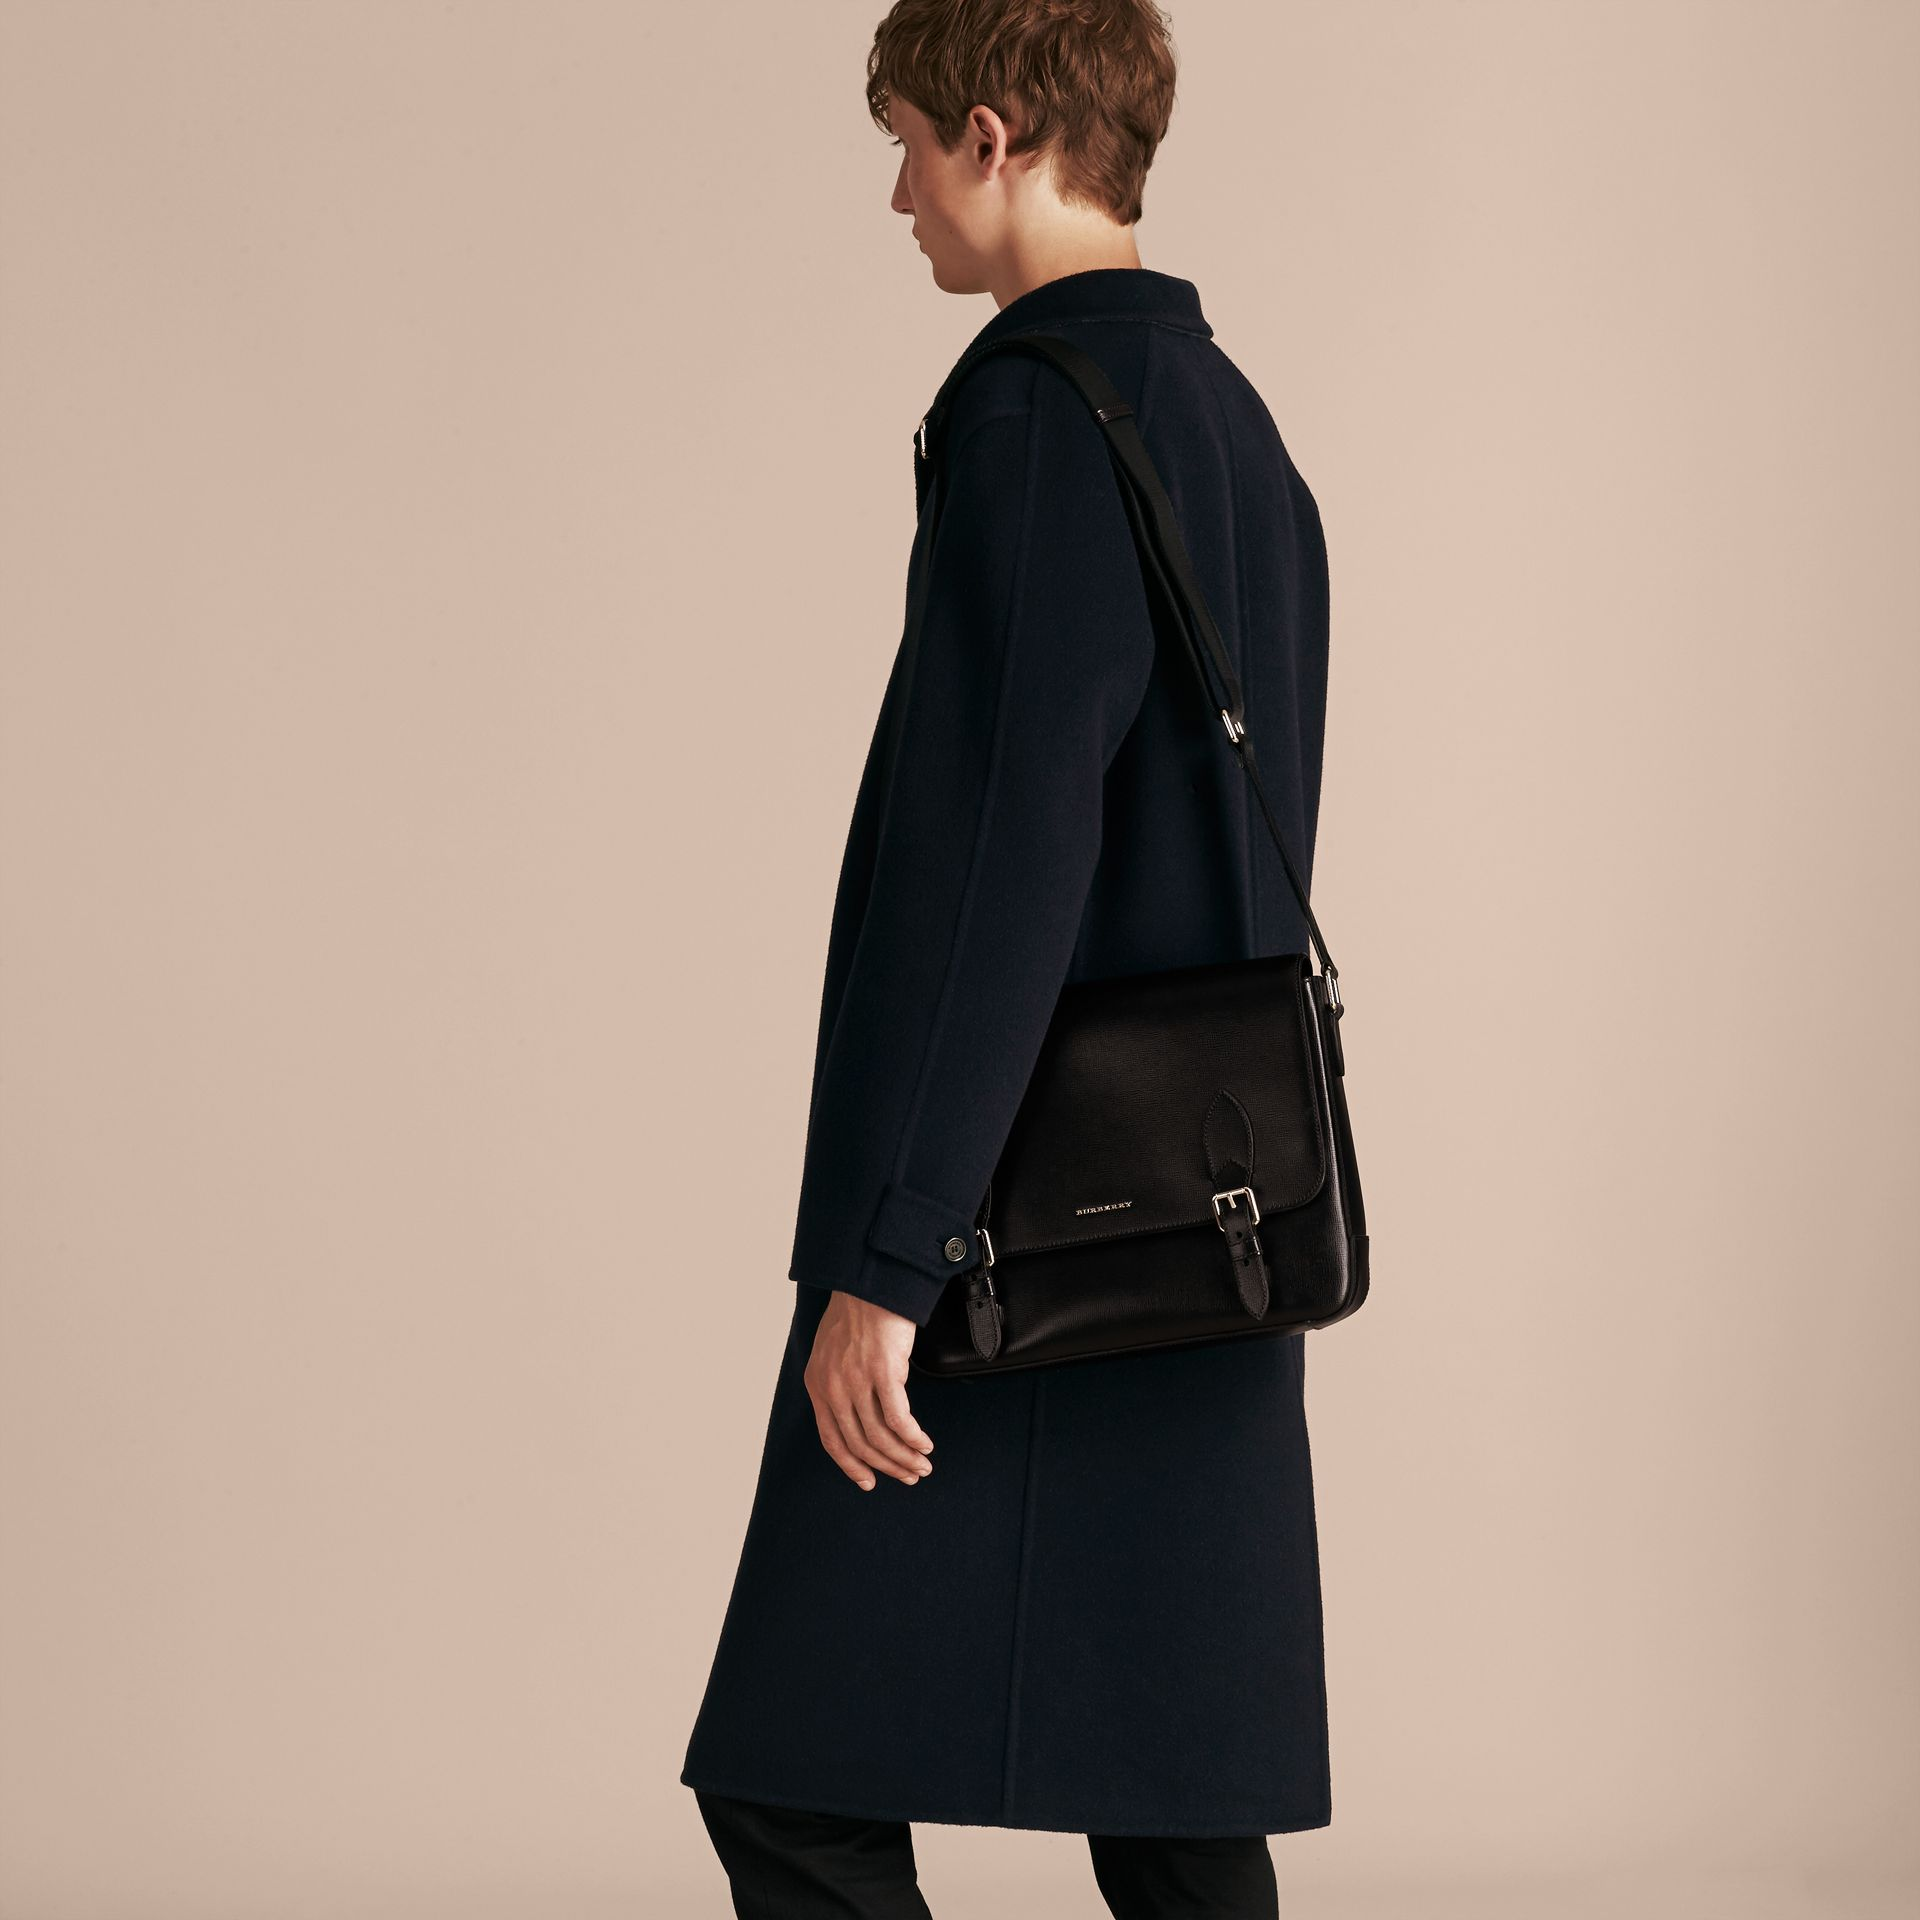 Medium London Leather Messenger Bag in Black - Men | Burberry Canada - gallery image 3